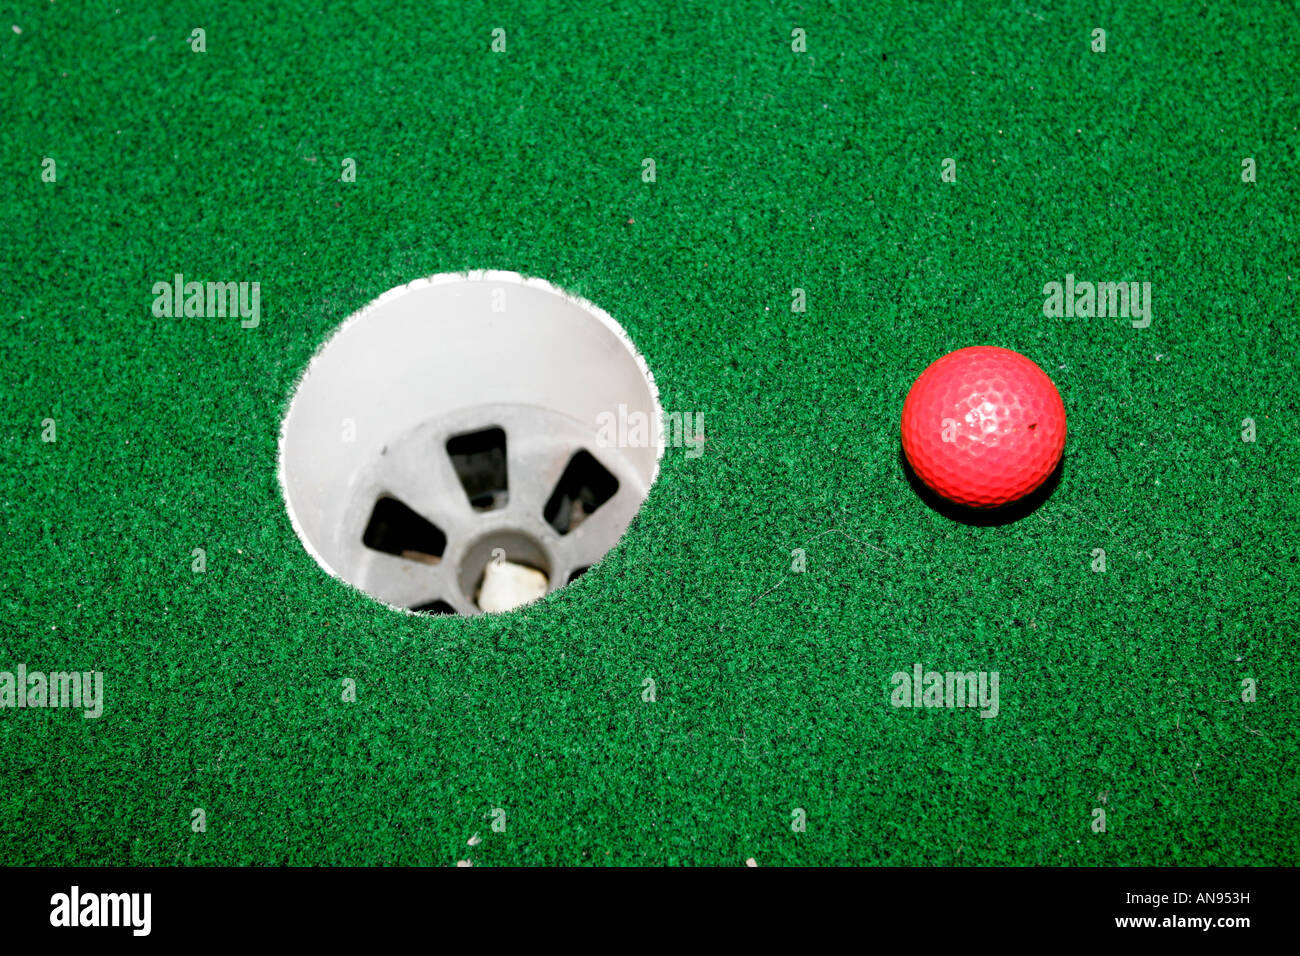 golf ball by hole artificial grass green putting green at night with harsh on camera flash - Stock Image